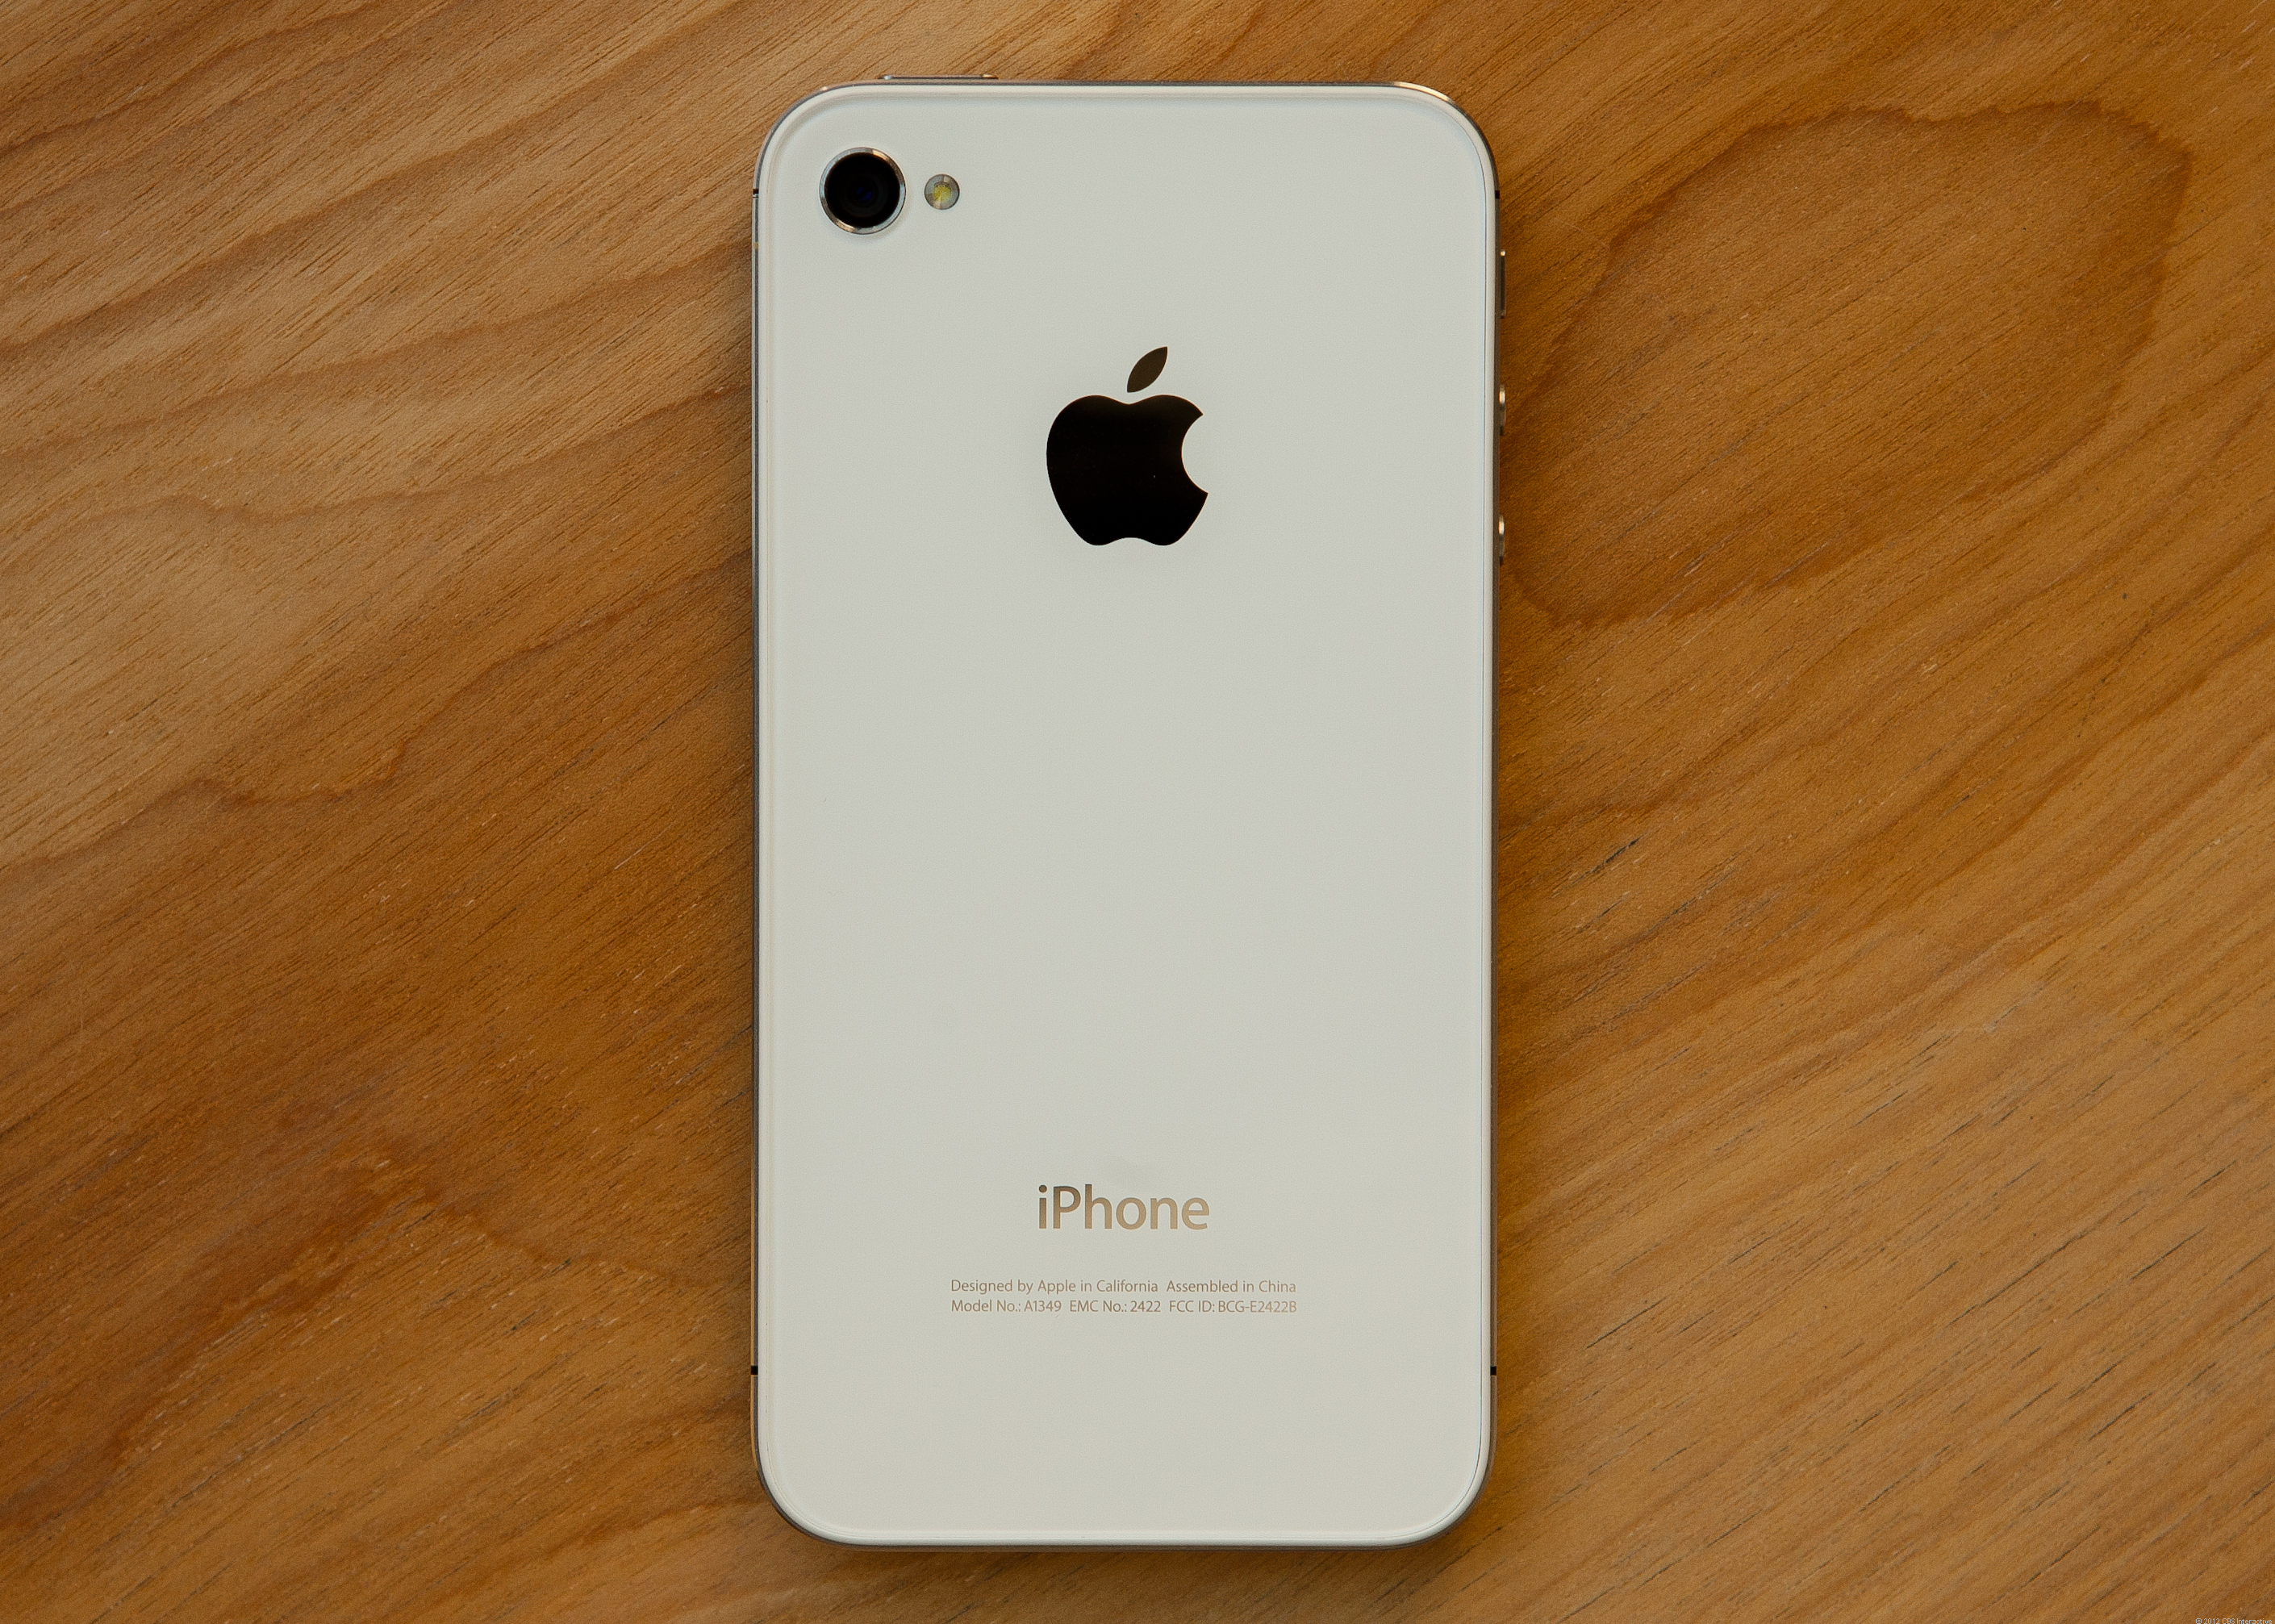 Apple iPhone 4 - 8GB - white (Virgin Mobile)